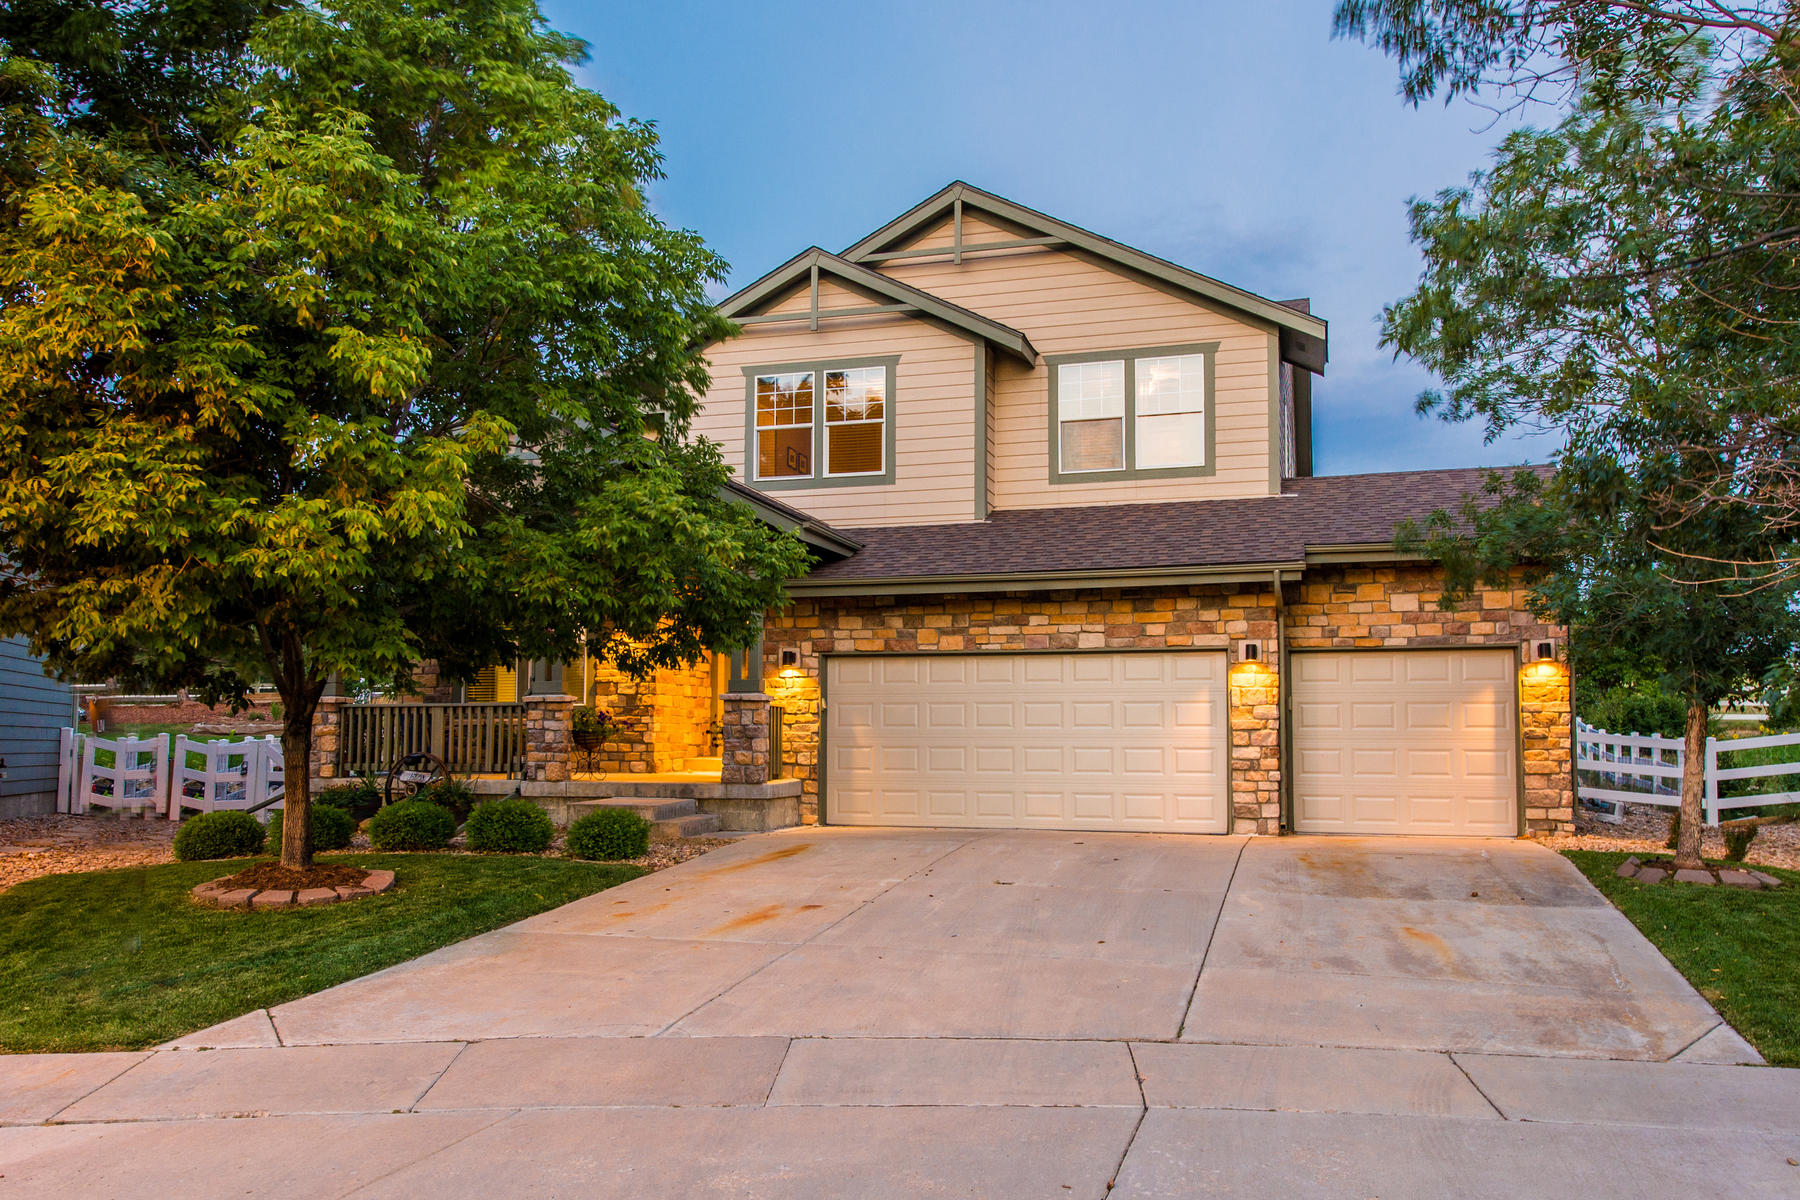 Single Family Home for Sale at Storybook Scene. 1570 S Goldbug Cir Murphy Creek, Aurora, Colorado, 80018 United States